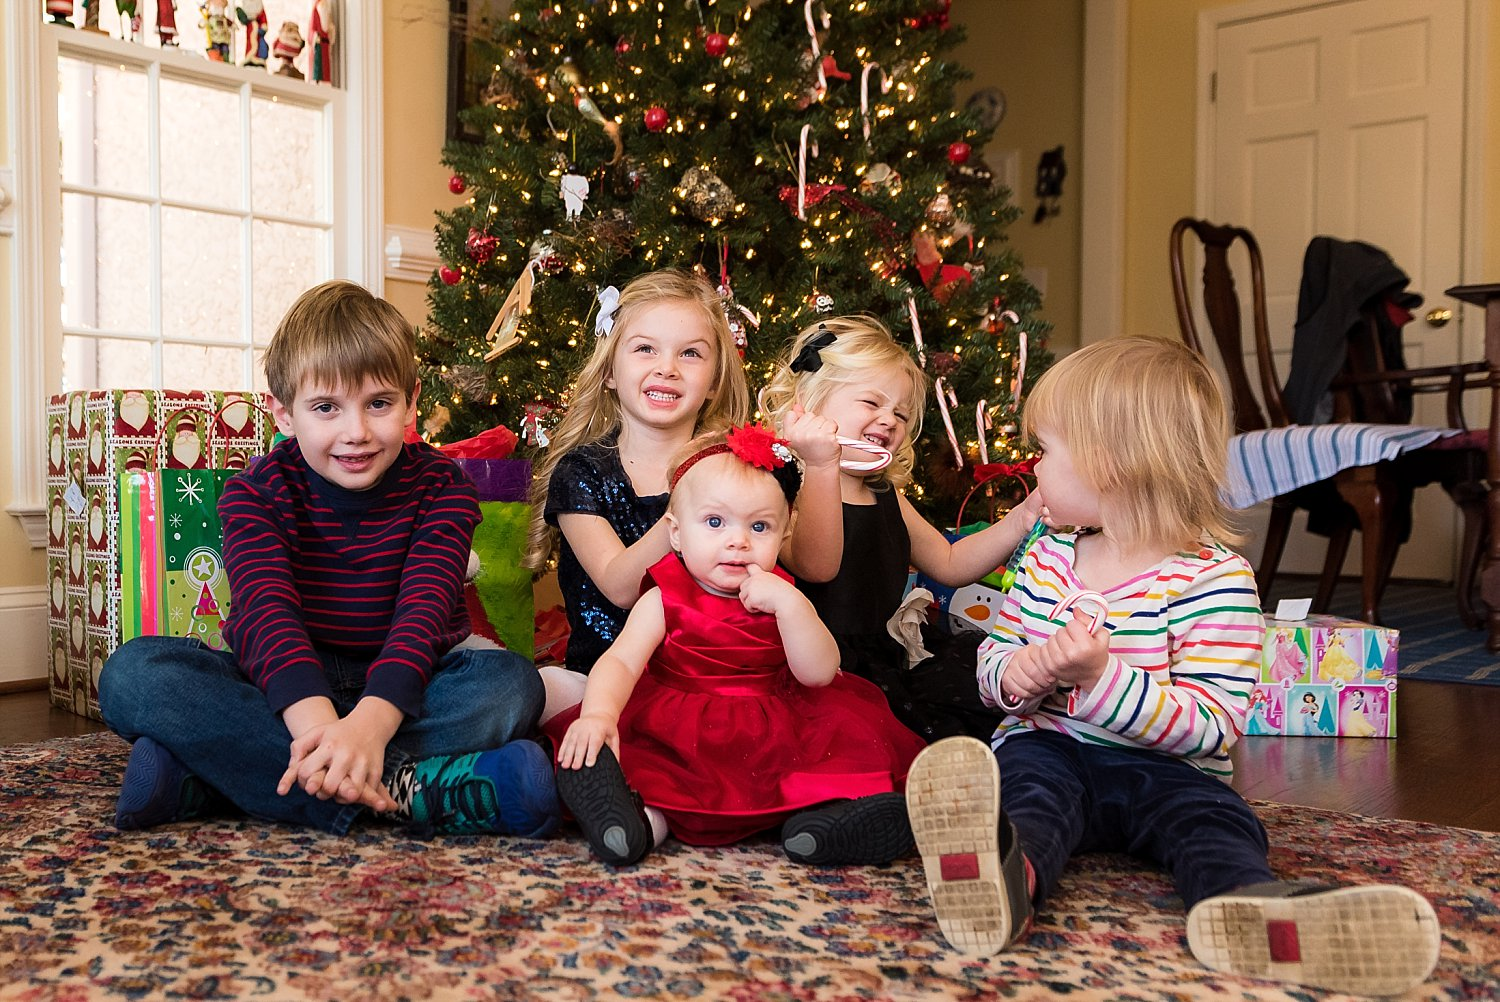 6 grandkids sitting in front of Christmas tree